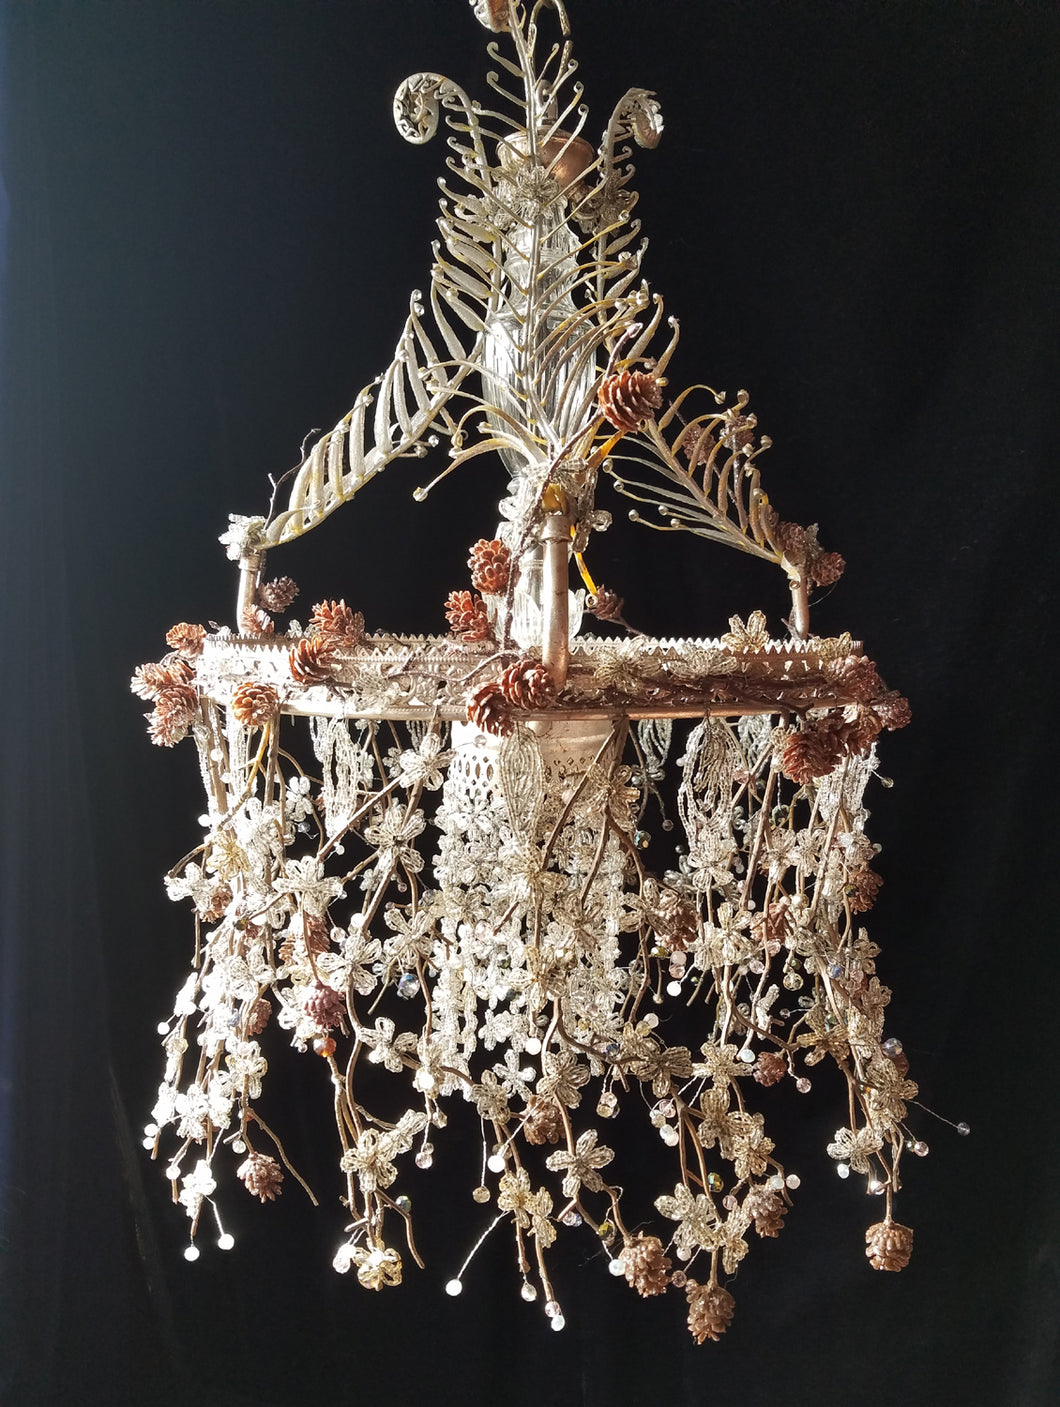 Beaded Chandelier Lighting, Vintage Flowers, Branches and Crystal, 15